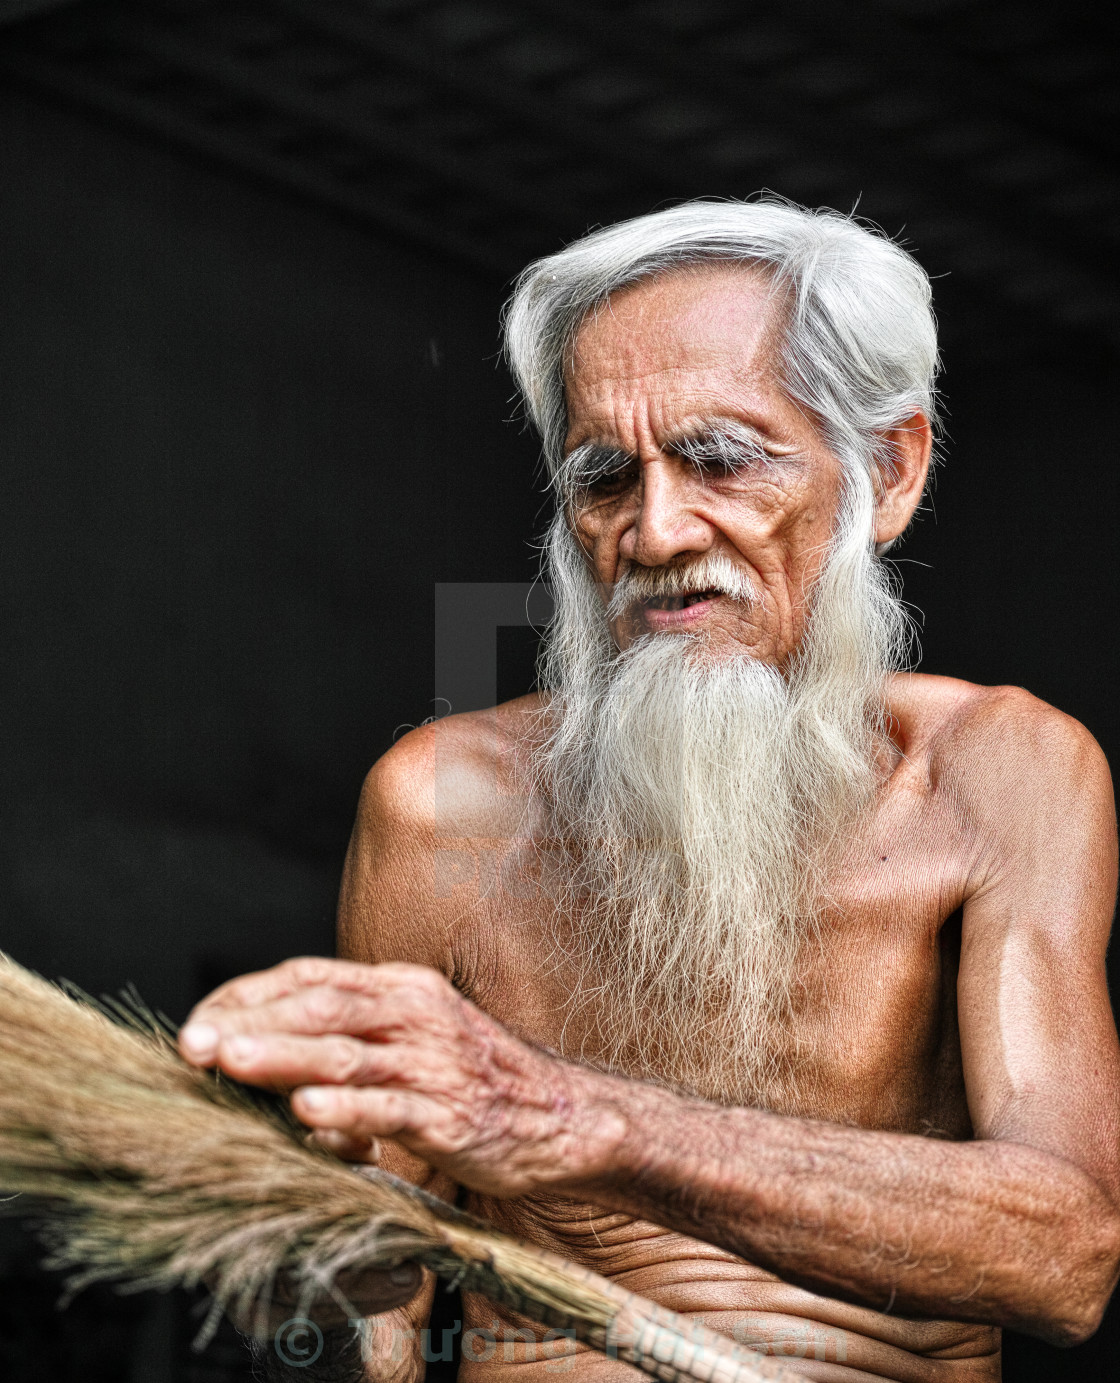 the old man makes broom license for 12 40 on picfair